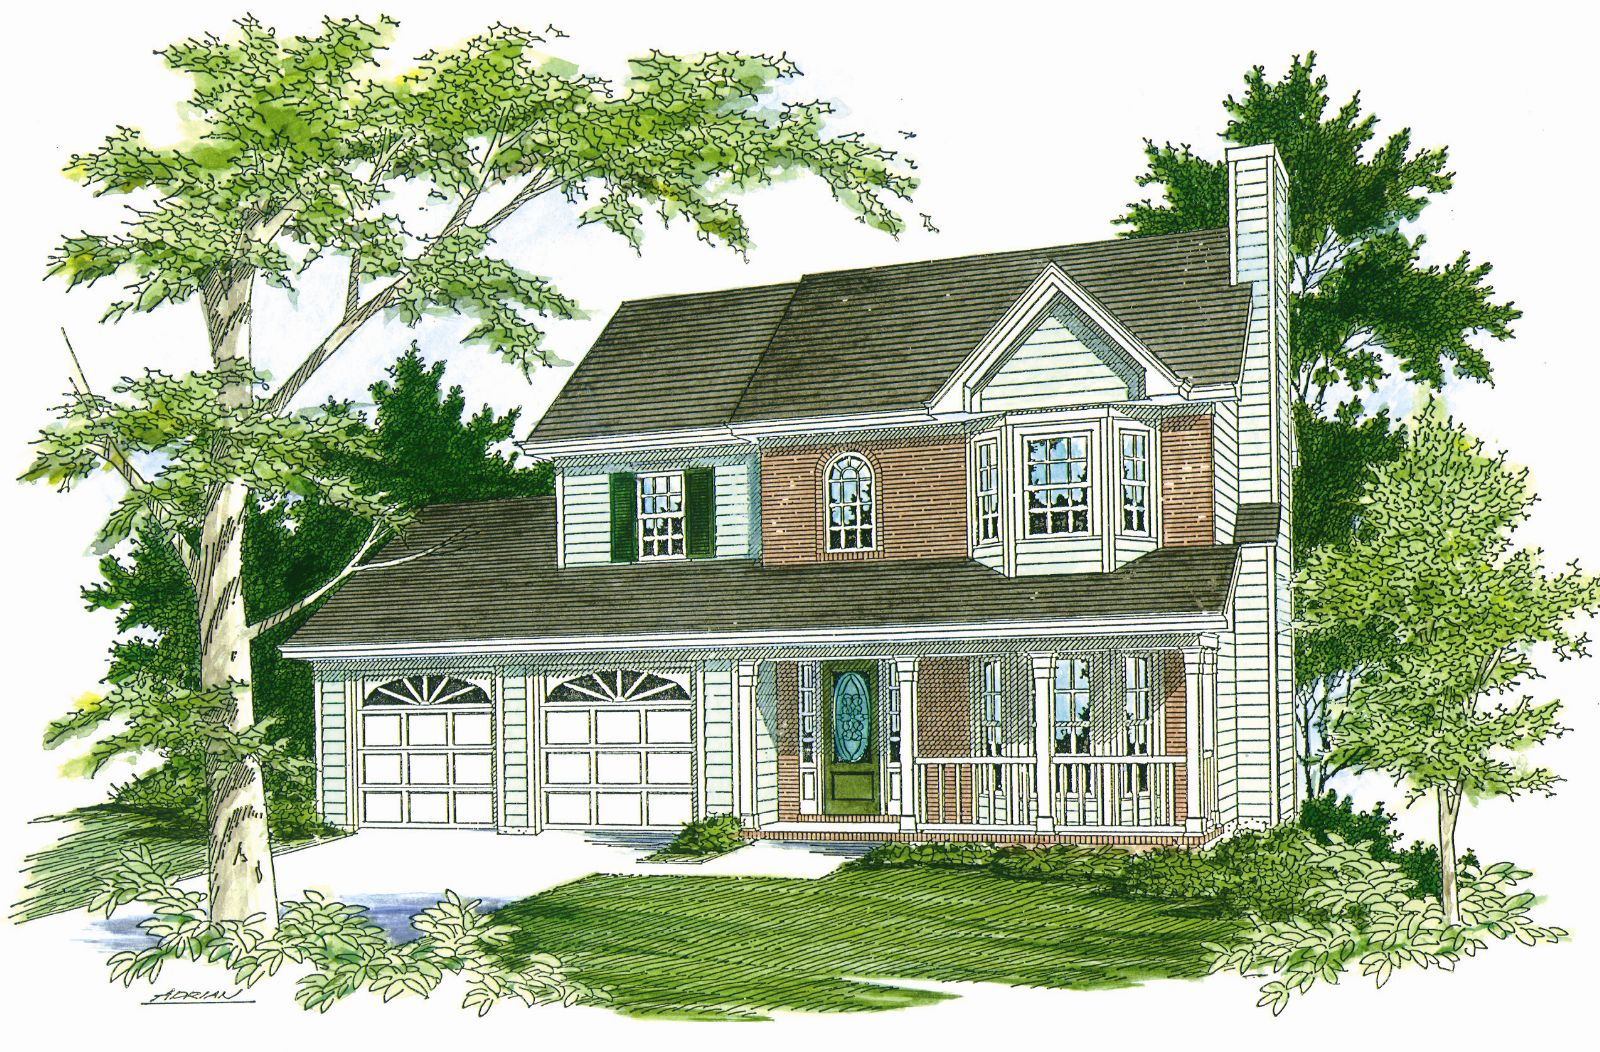 House plans with cost estimates to build house plan cost for Build a house cost estimator